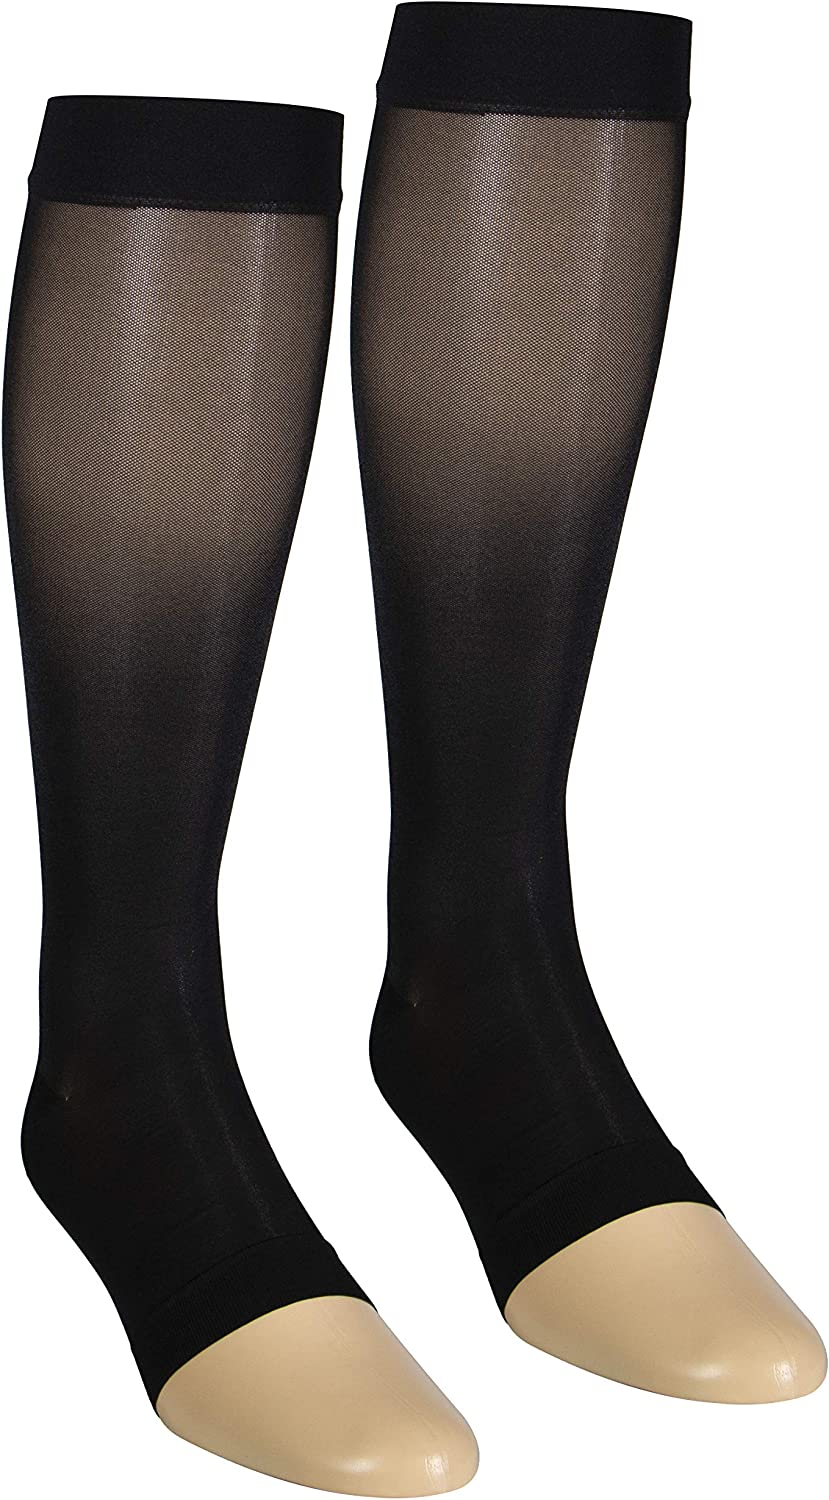 Today's only Max 56% OFF NuVein Sheer Compression Stockings Fashion Sheen Silky Op Denier